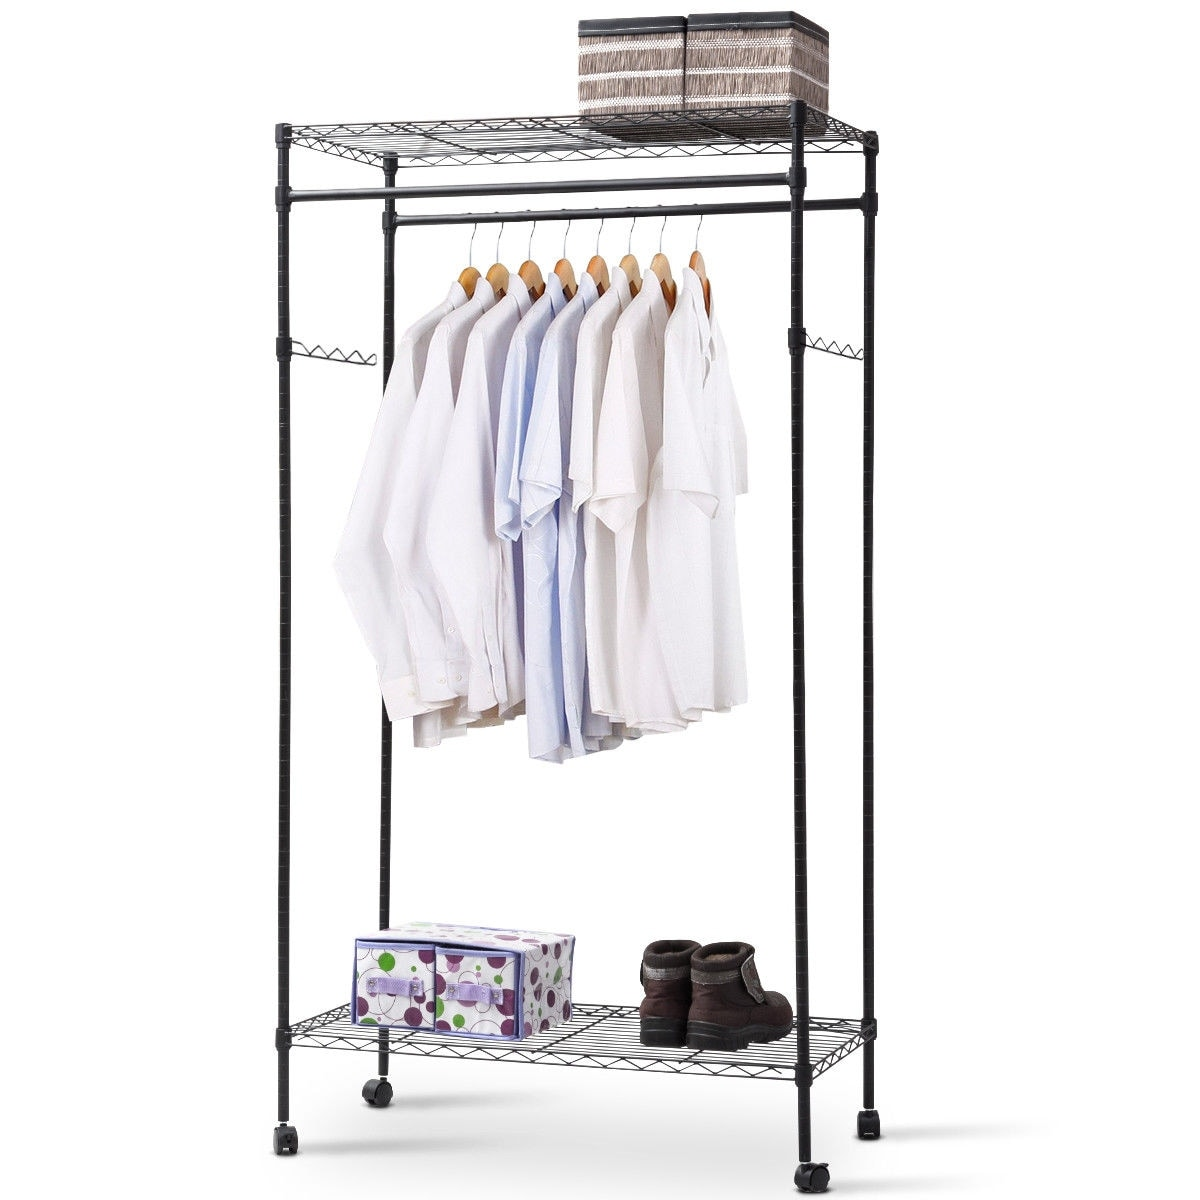 Double Hanging Clothes Rail Rolling